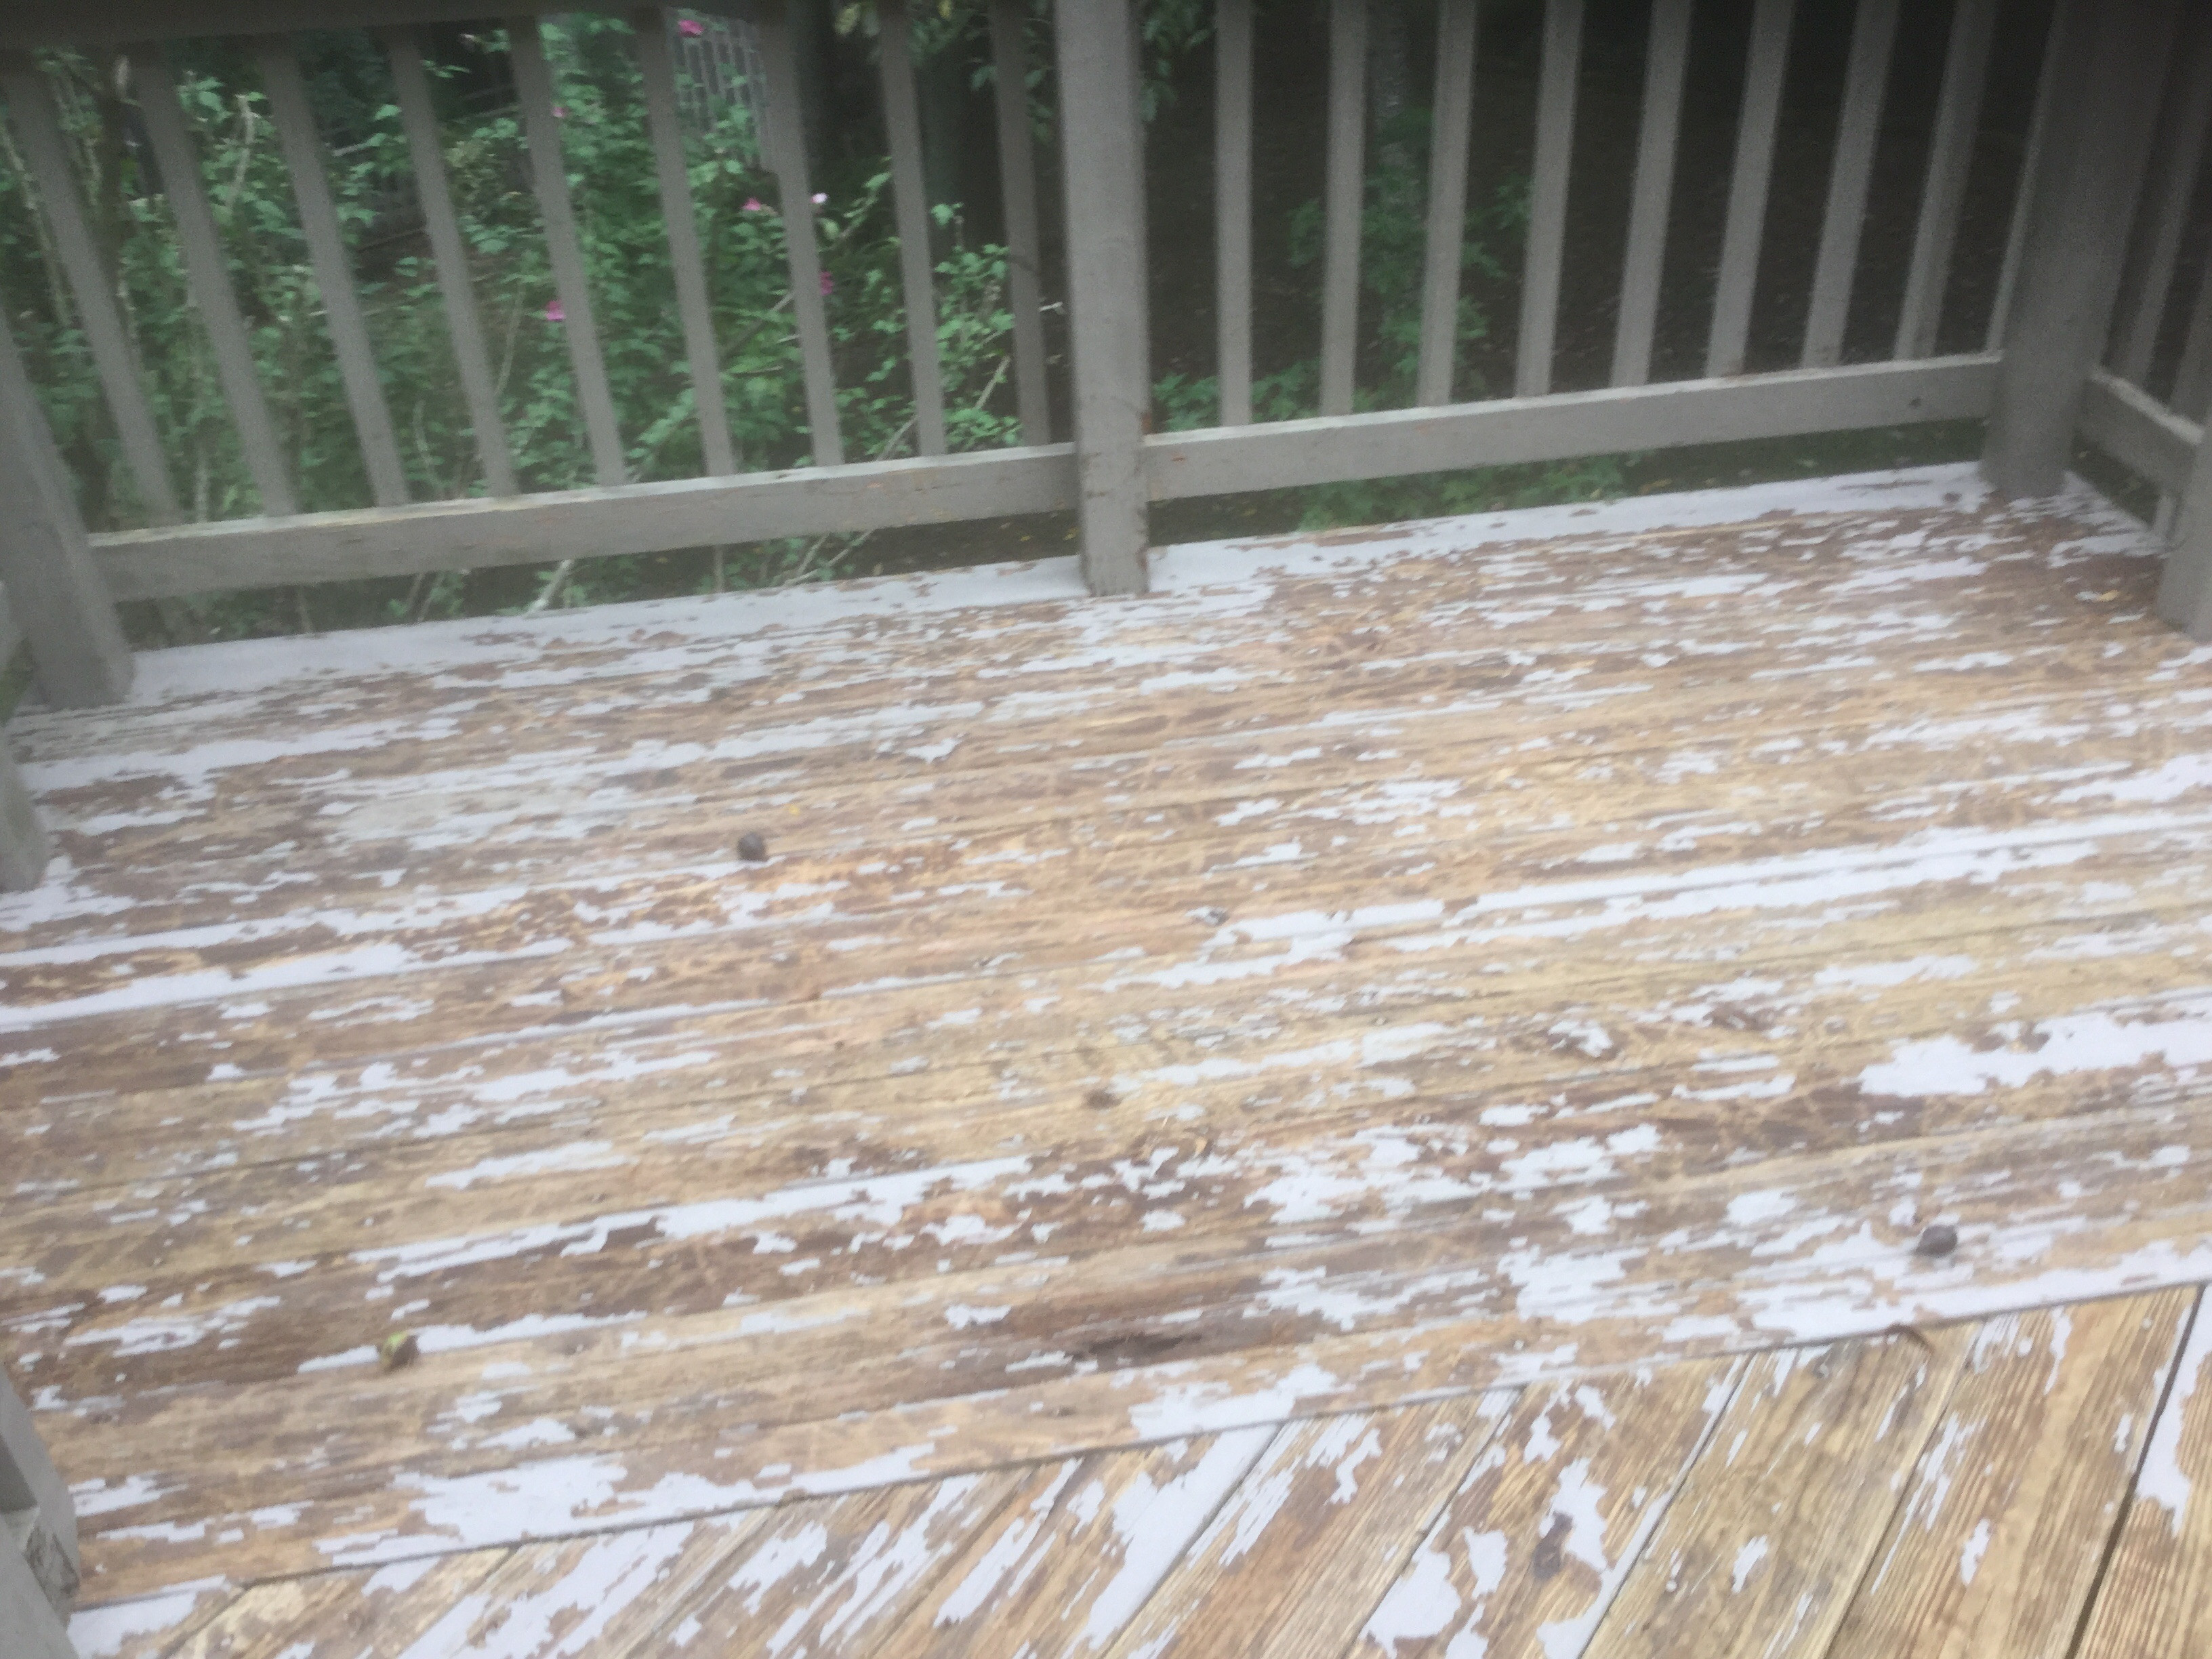 hardwood floor refinishing fredericksburg va of class action lawsuit against olympic rescue it best deck stain pertaining to image